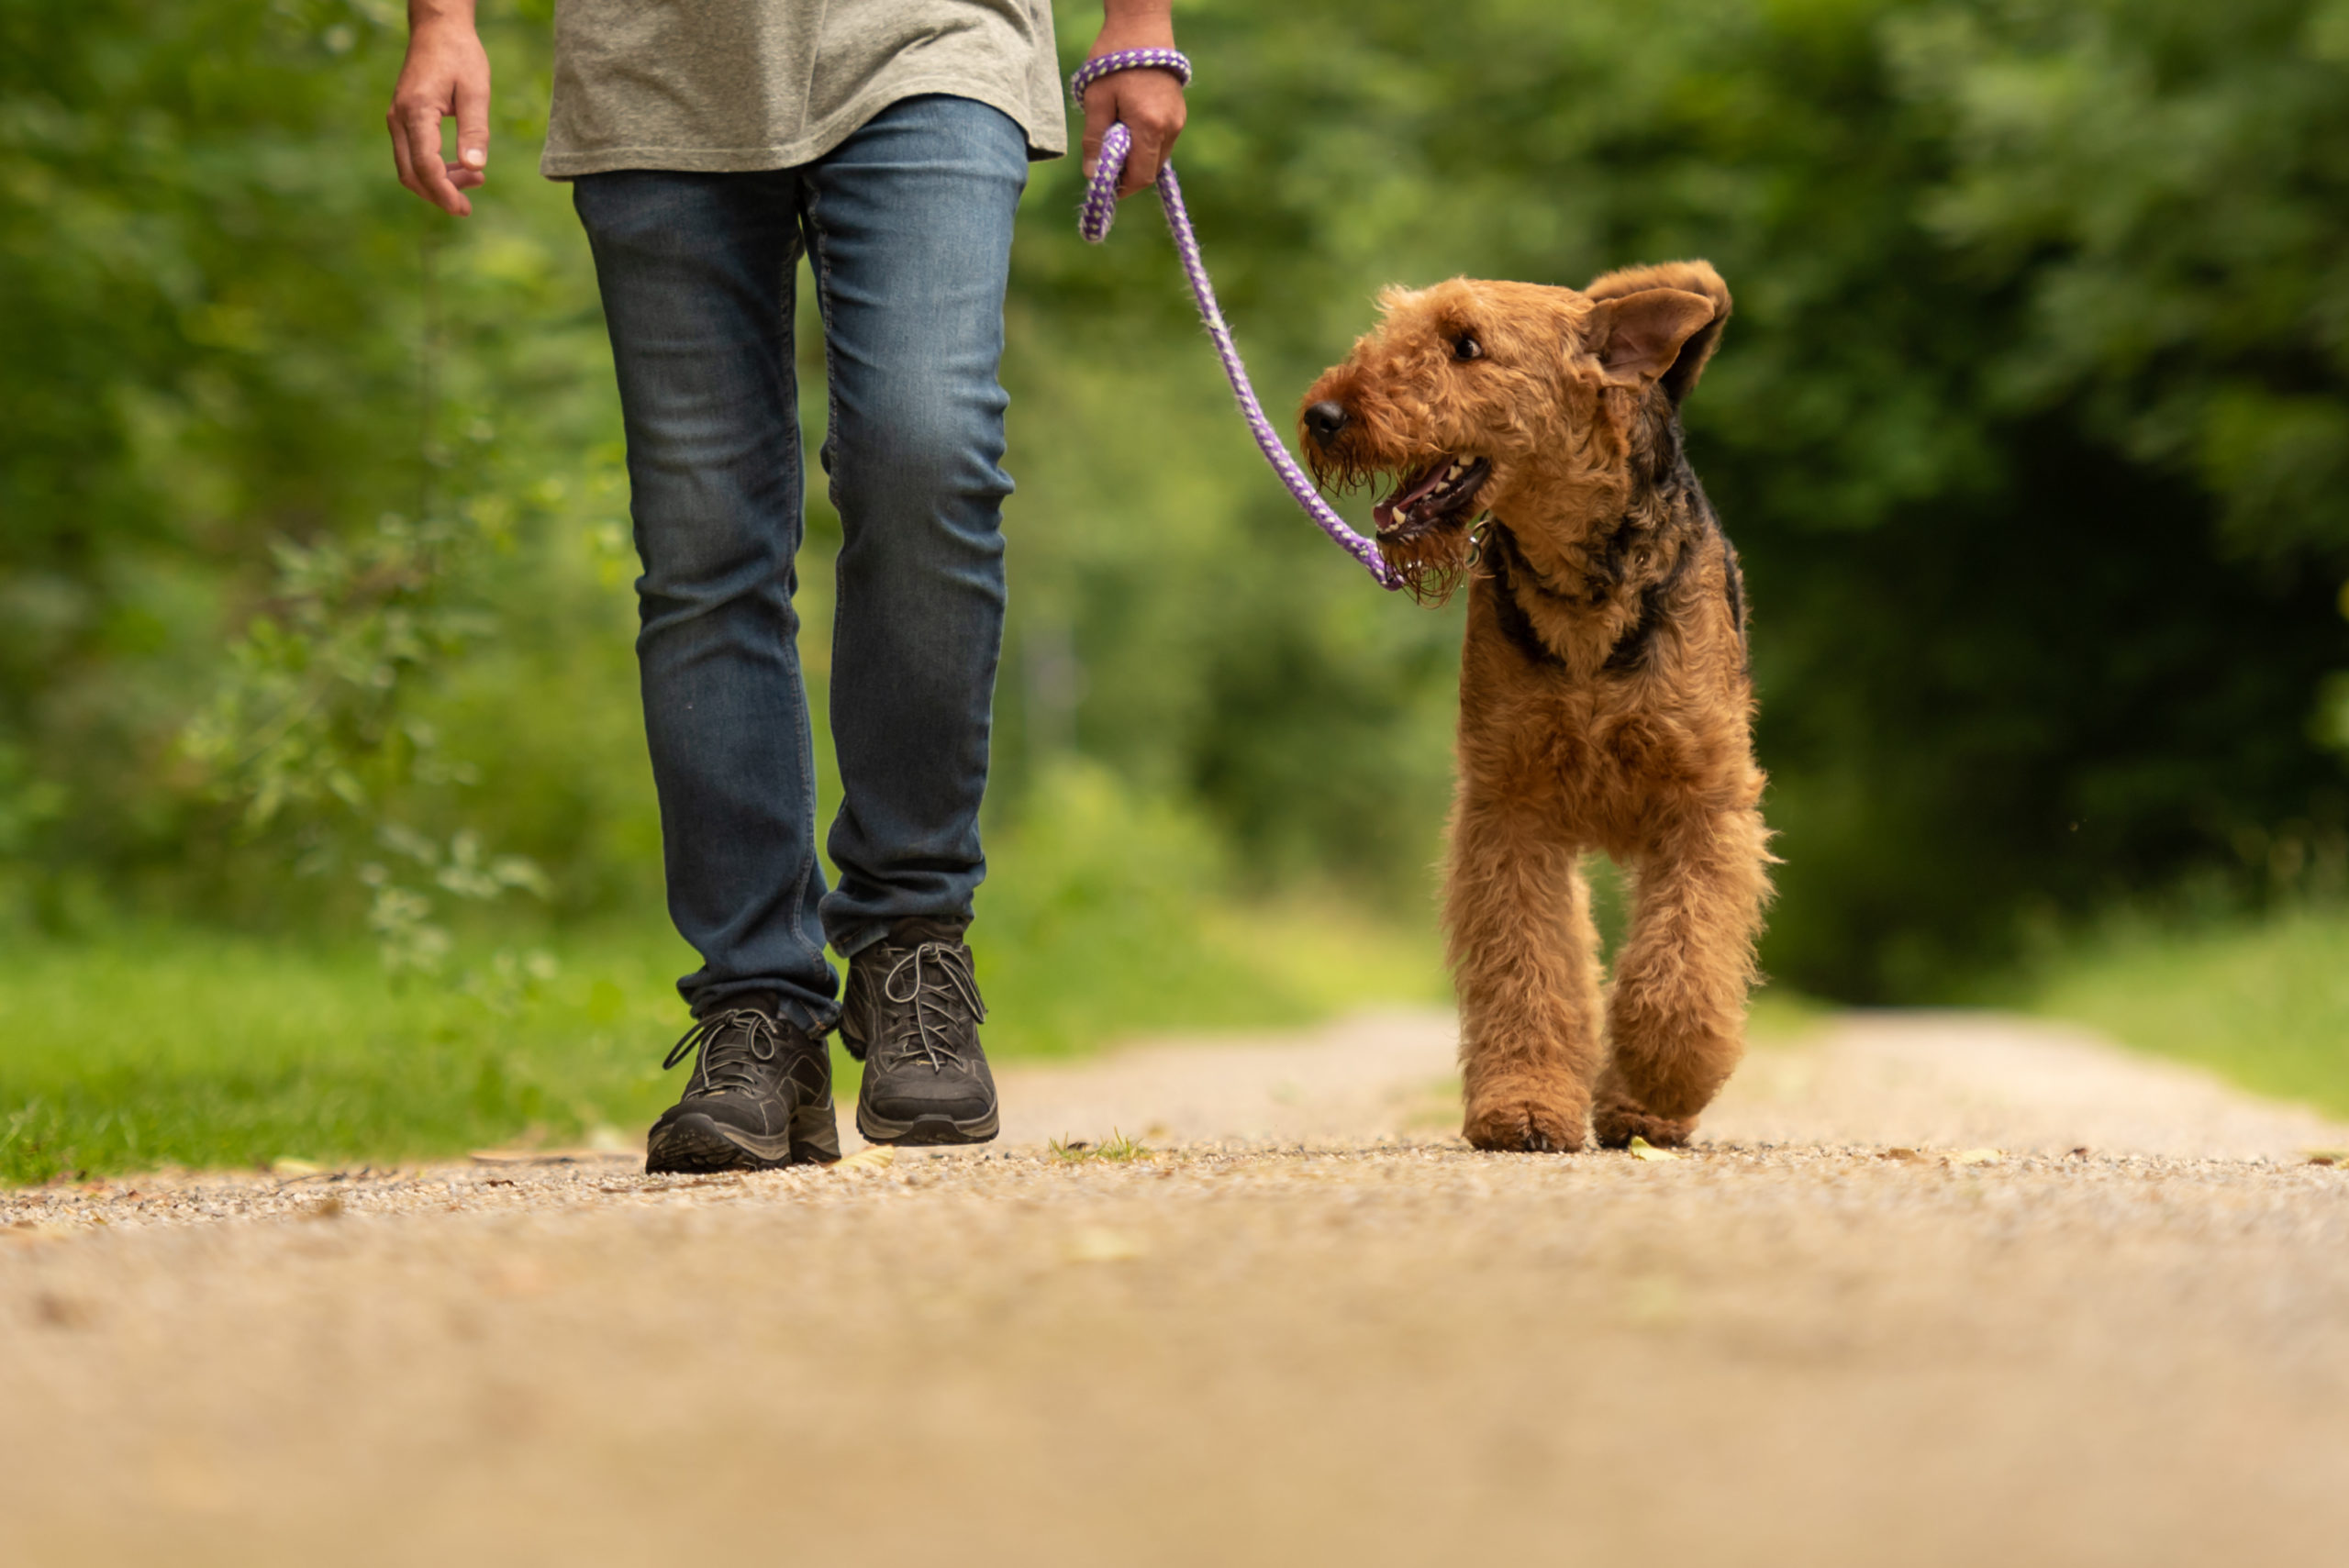 owner walking with dog at a dog park outside